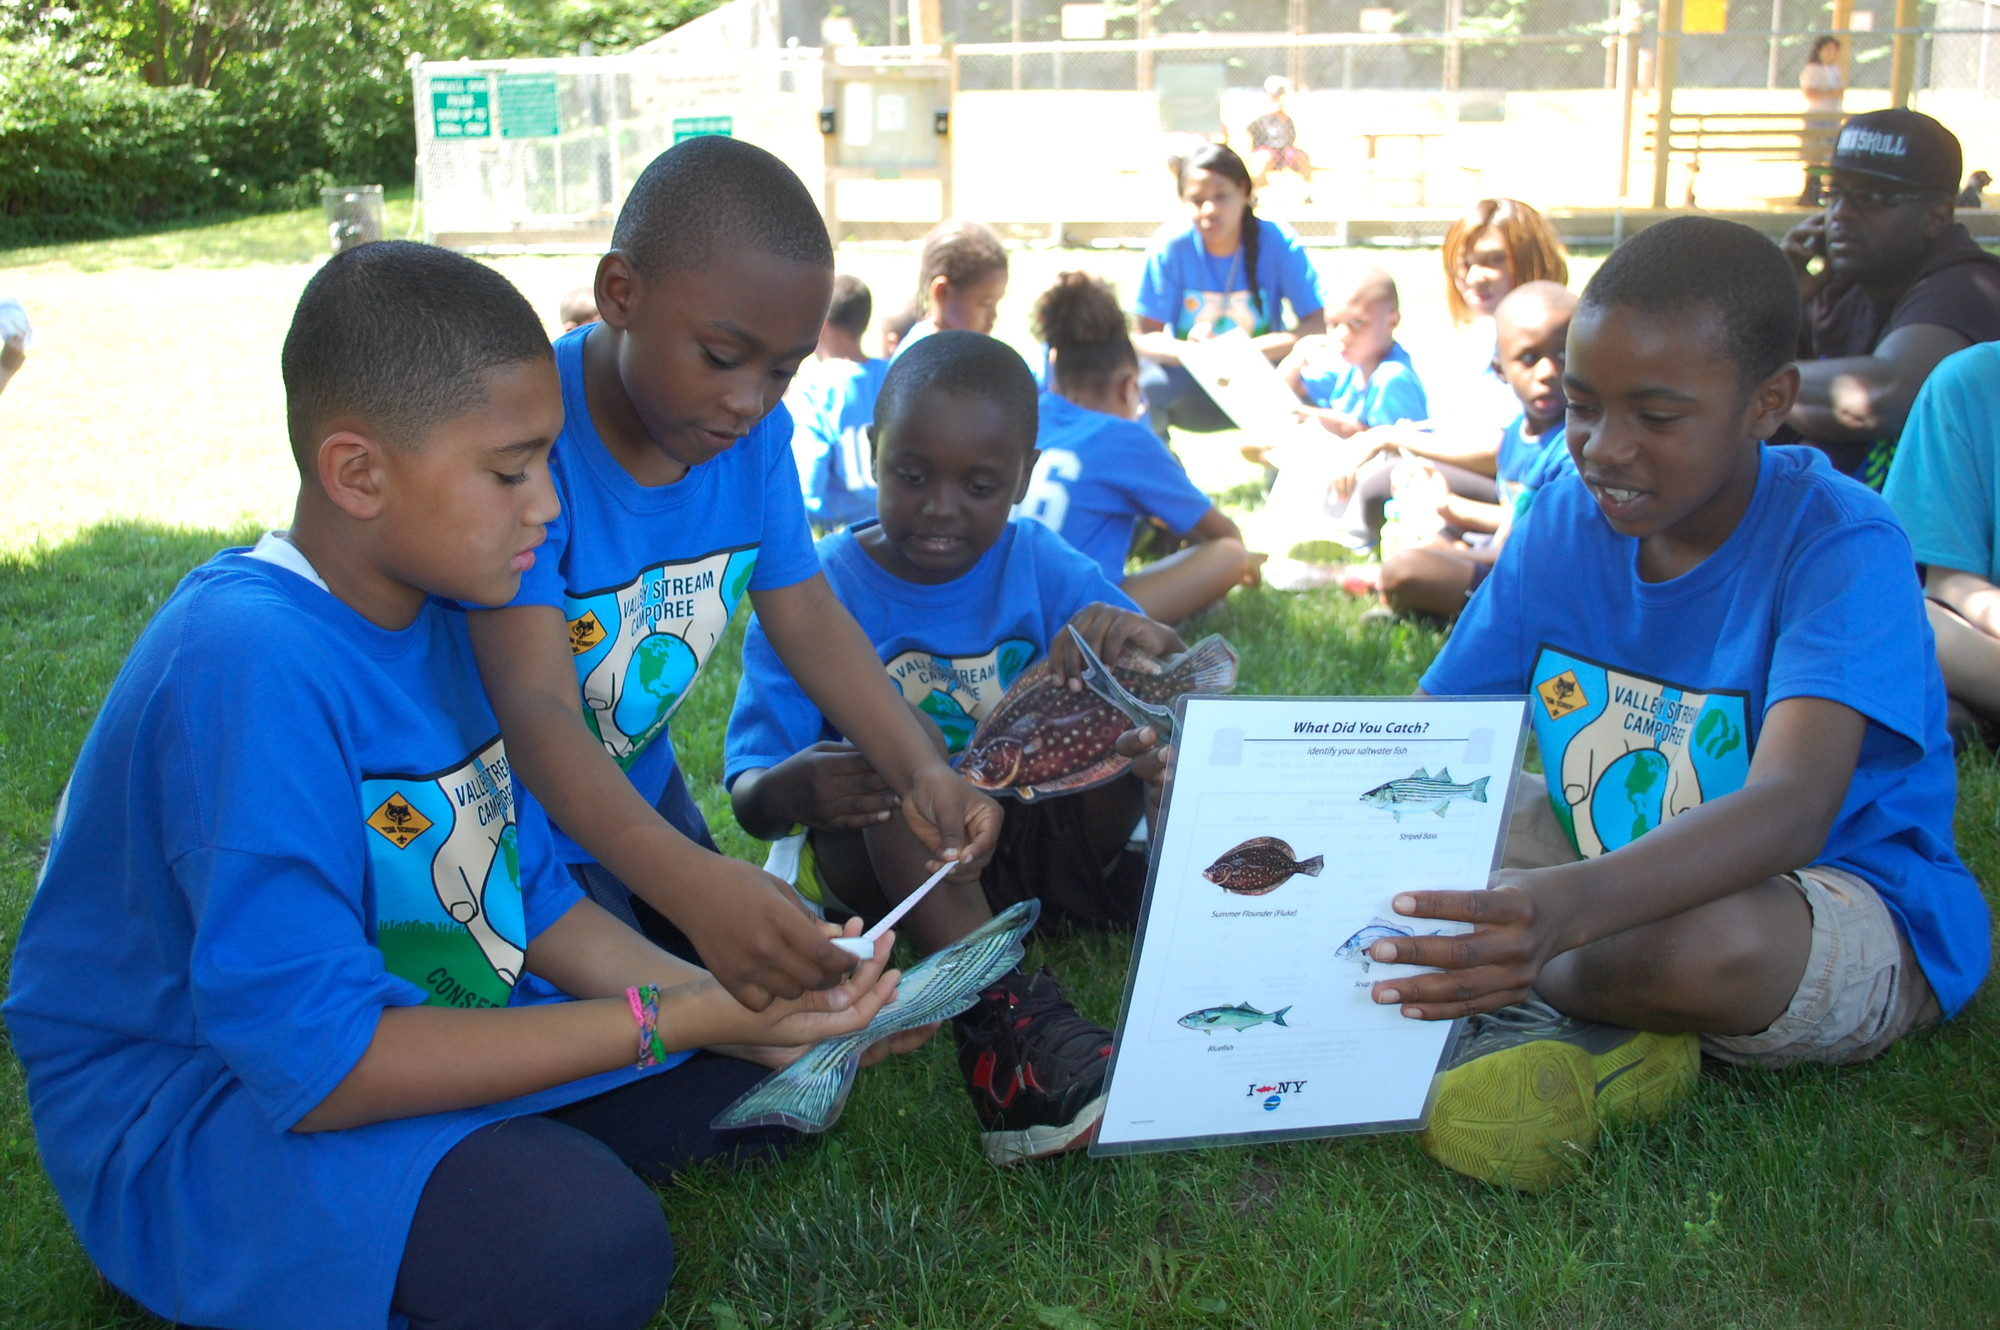 Pack 106 Cub Scouts, from left, Brian Ward, Anthony Wood, Darius Dorsey and Cedrik Jean-Baptiste took part in the nature-based programs.